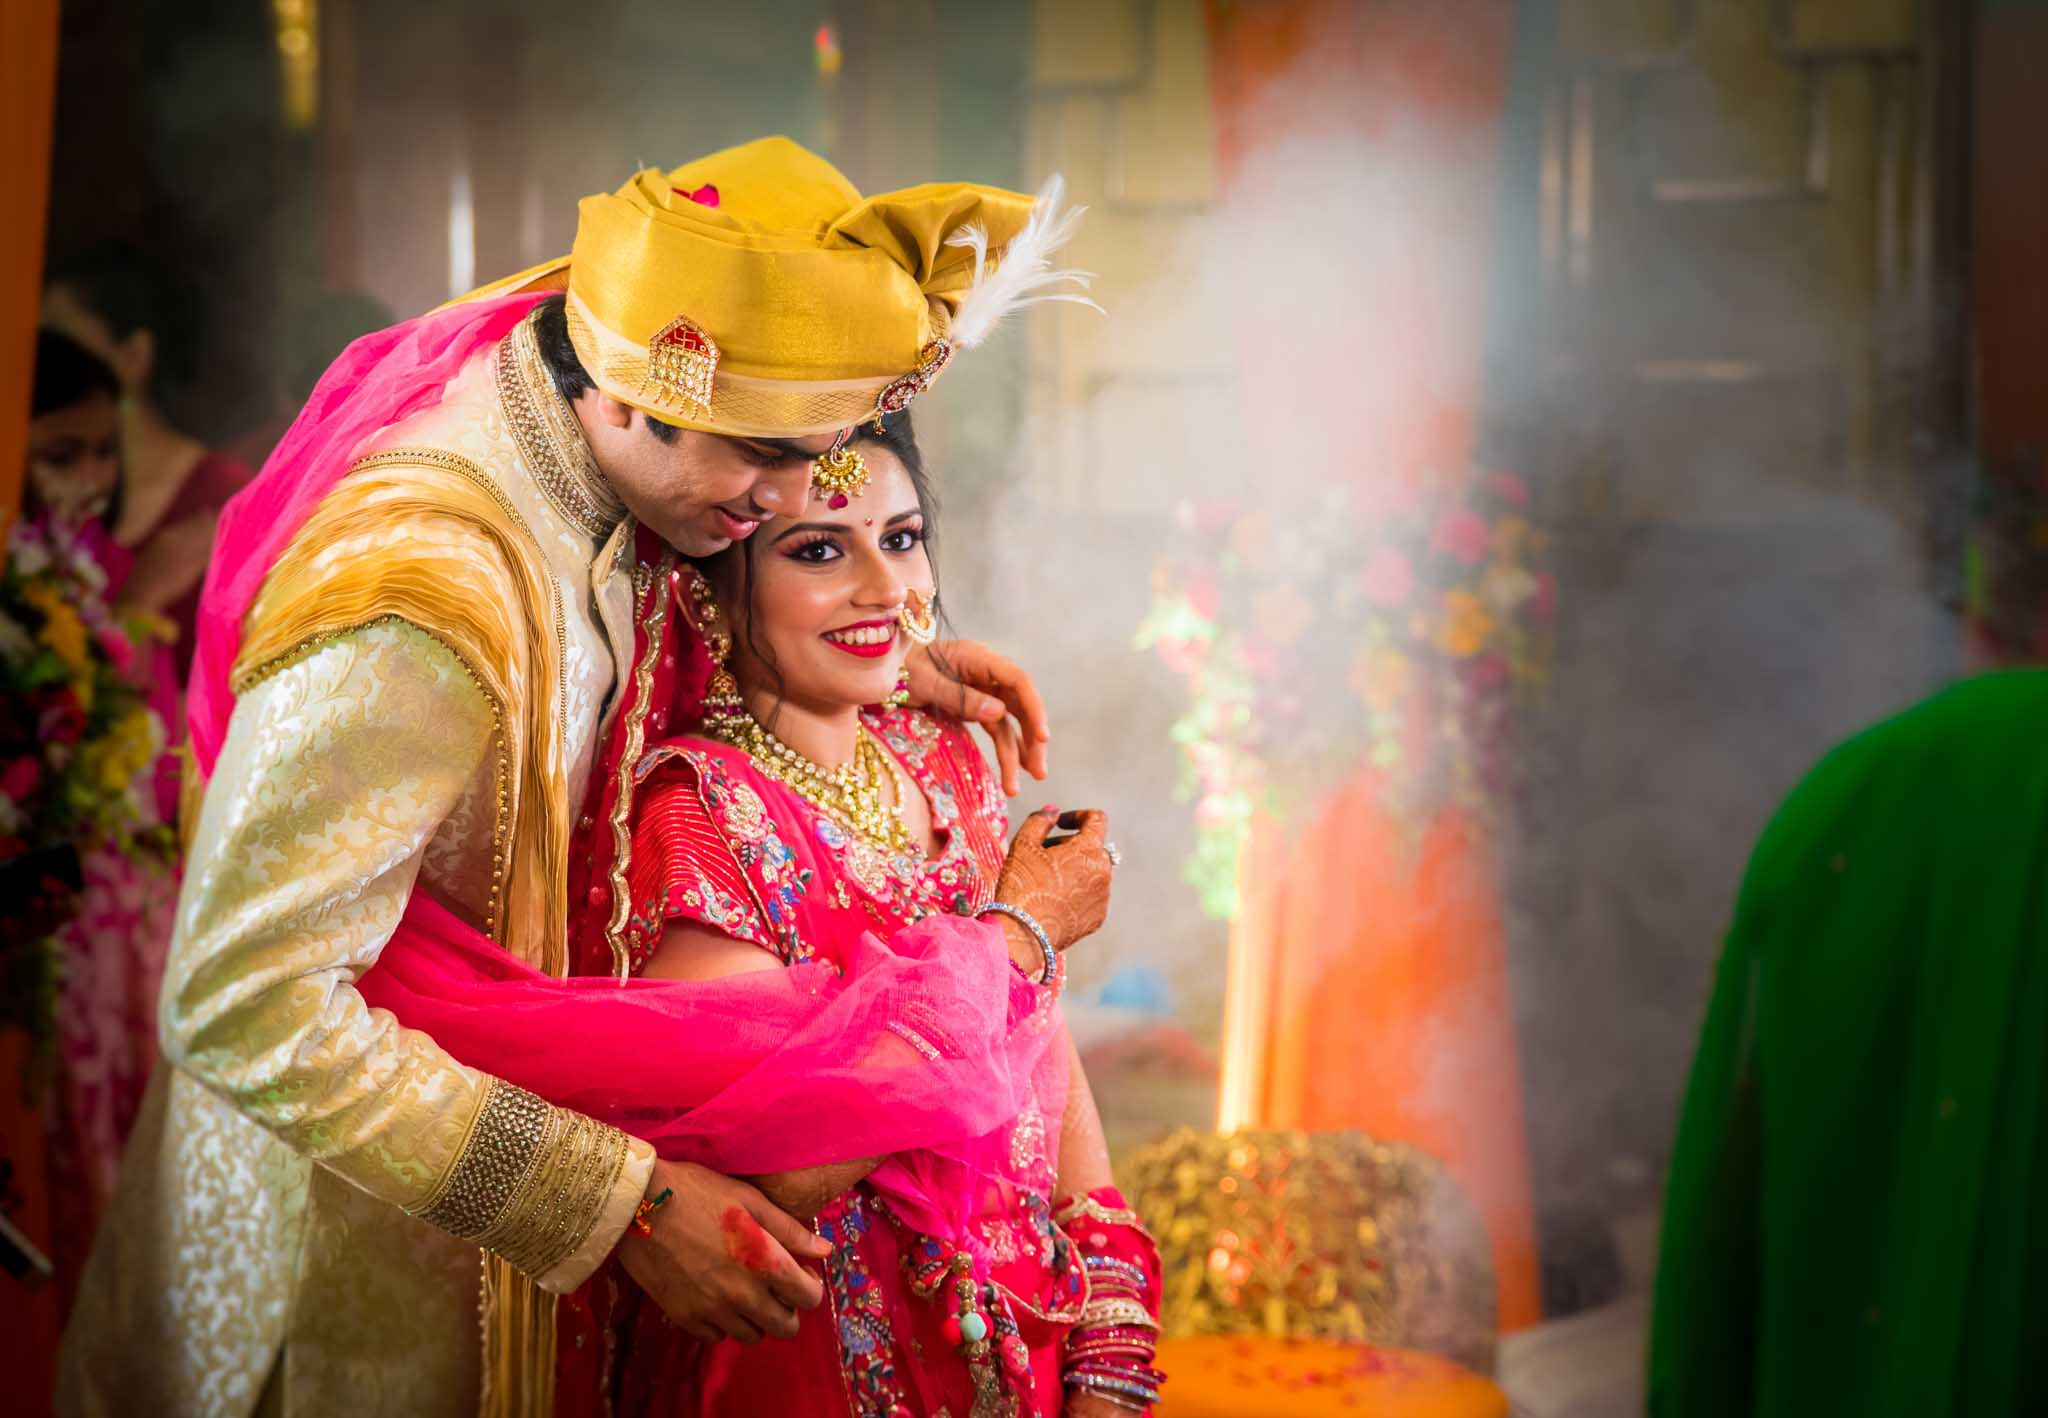 Candid-Wedding-Photography-Nagpur-Destination-85